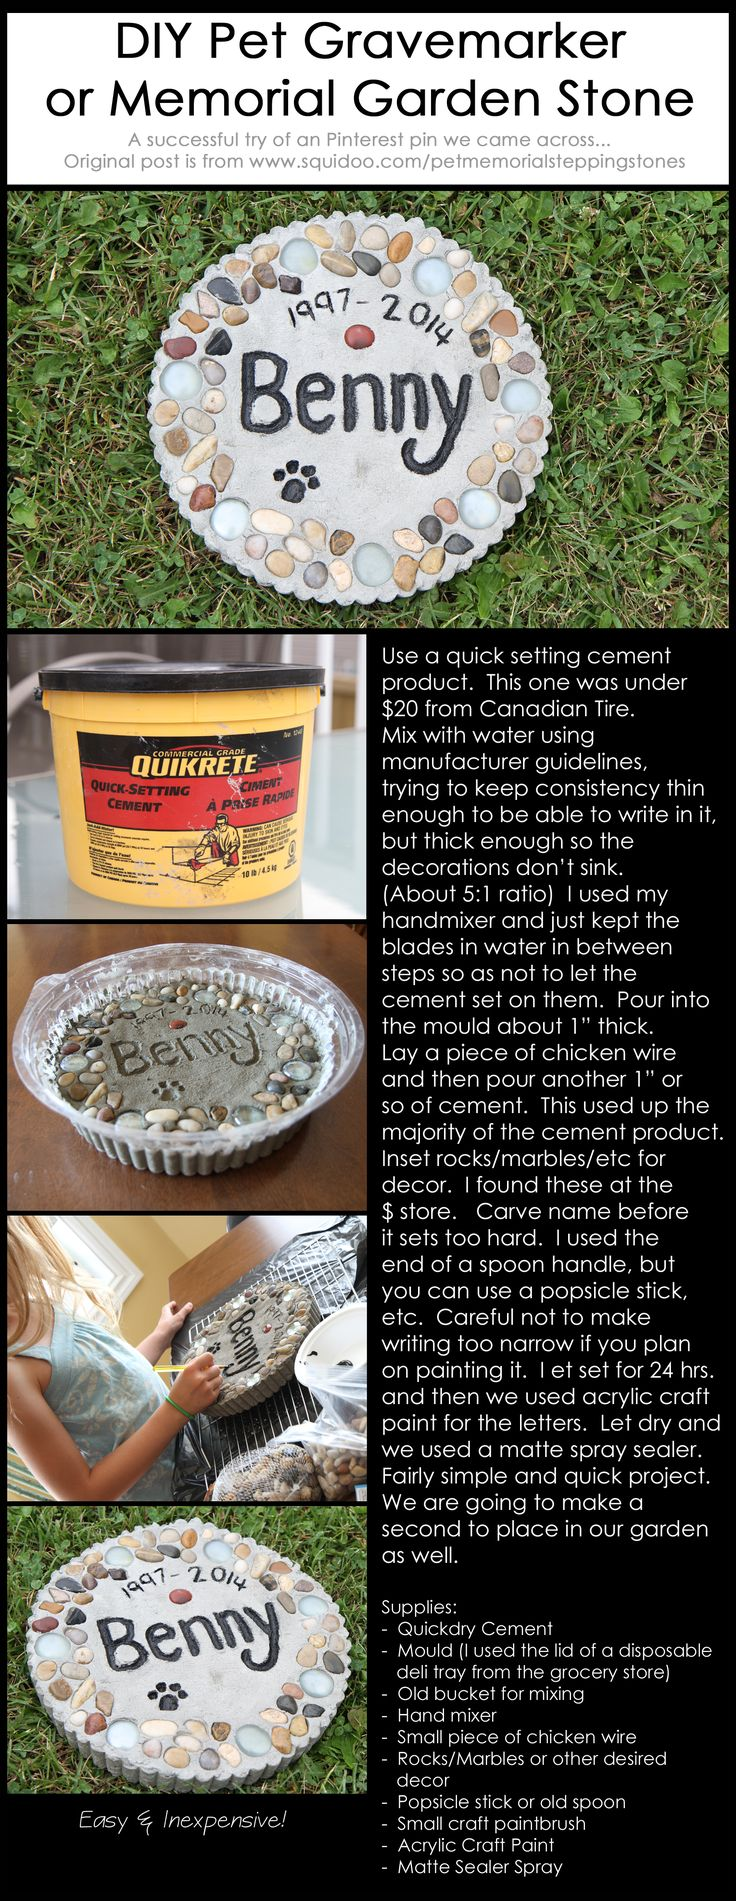 DIY Pet Gravemarker or Memorial Garden Stone. Inexpensive and easy! Original idea post by: www.squidoo.com/... Our family tried this and was pleased with the outcome. Plan on making a second as a Memorial Stone for our garden.